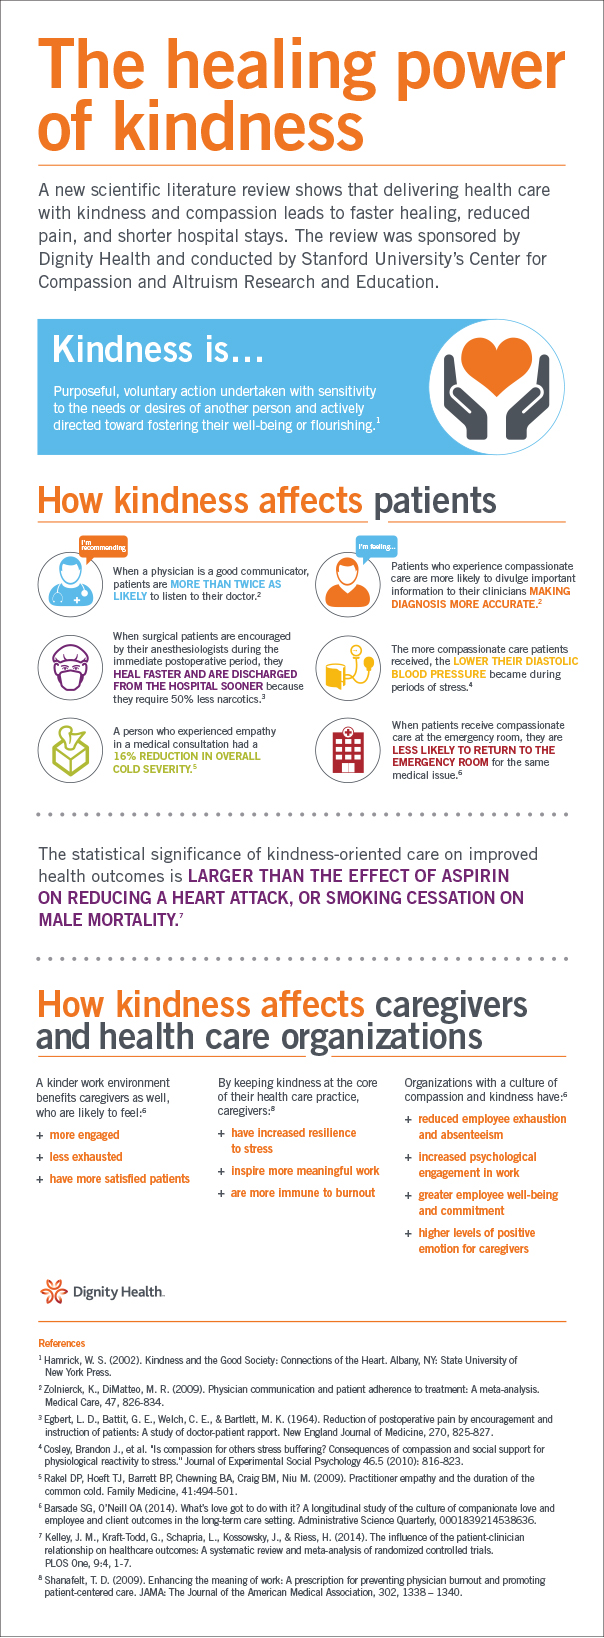 2014-11-13-CCARE_infographic_Final_2.jpg